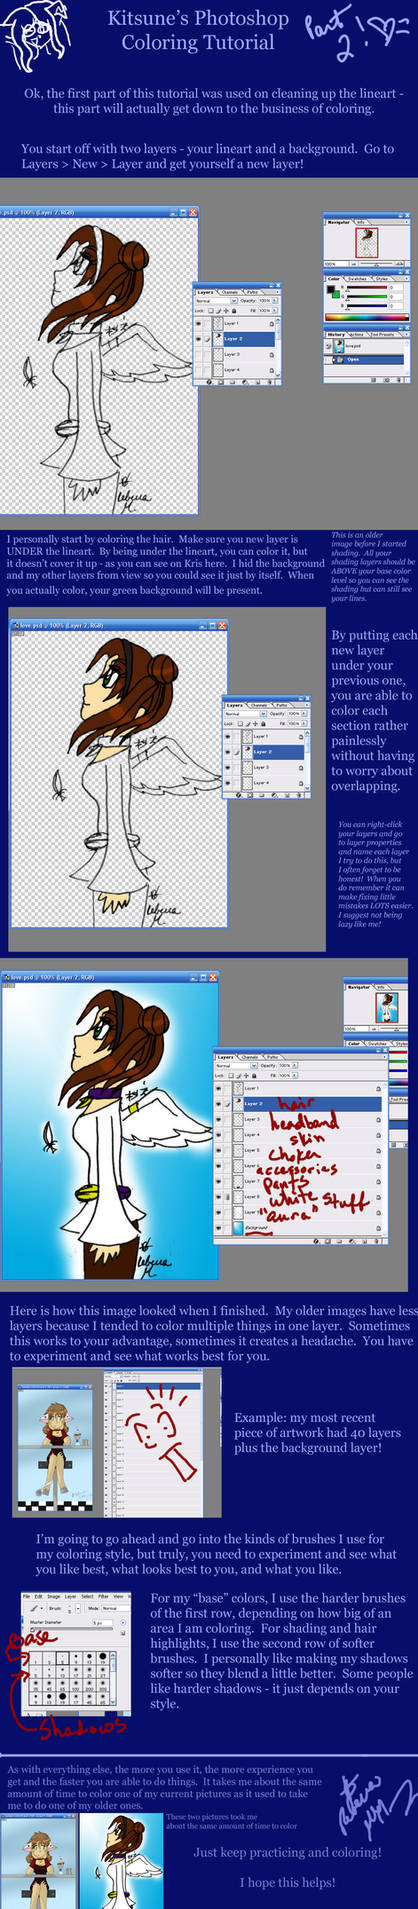 Photoshop Coloring Tutorial 2 by Kitsune-Fox17